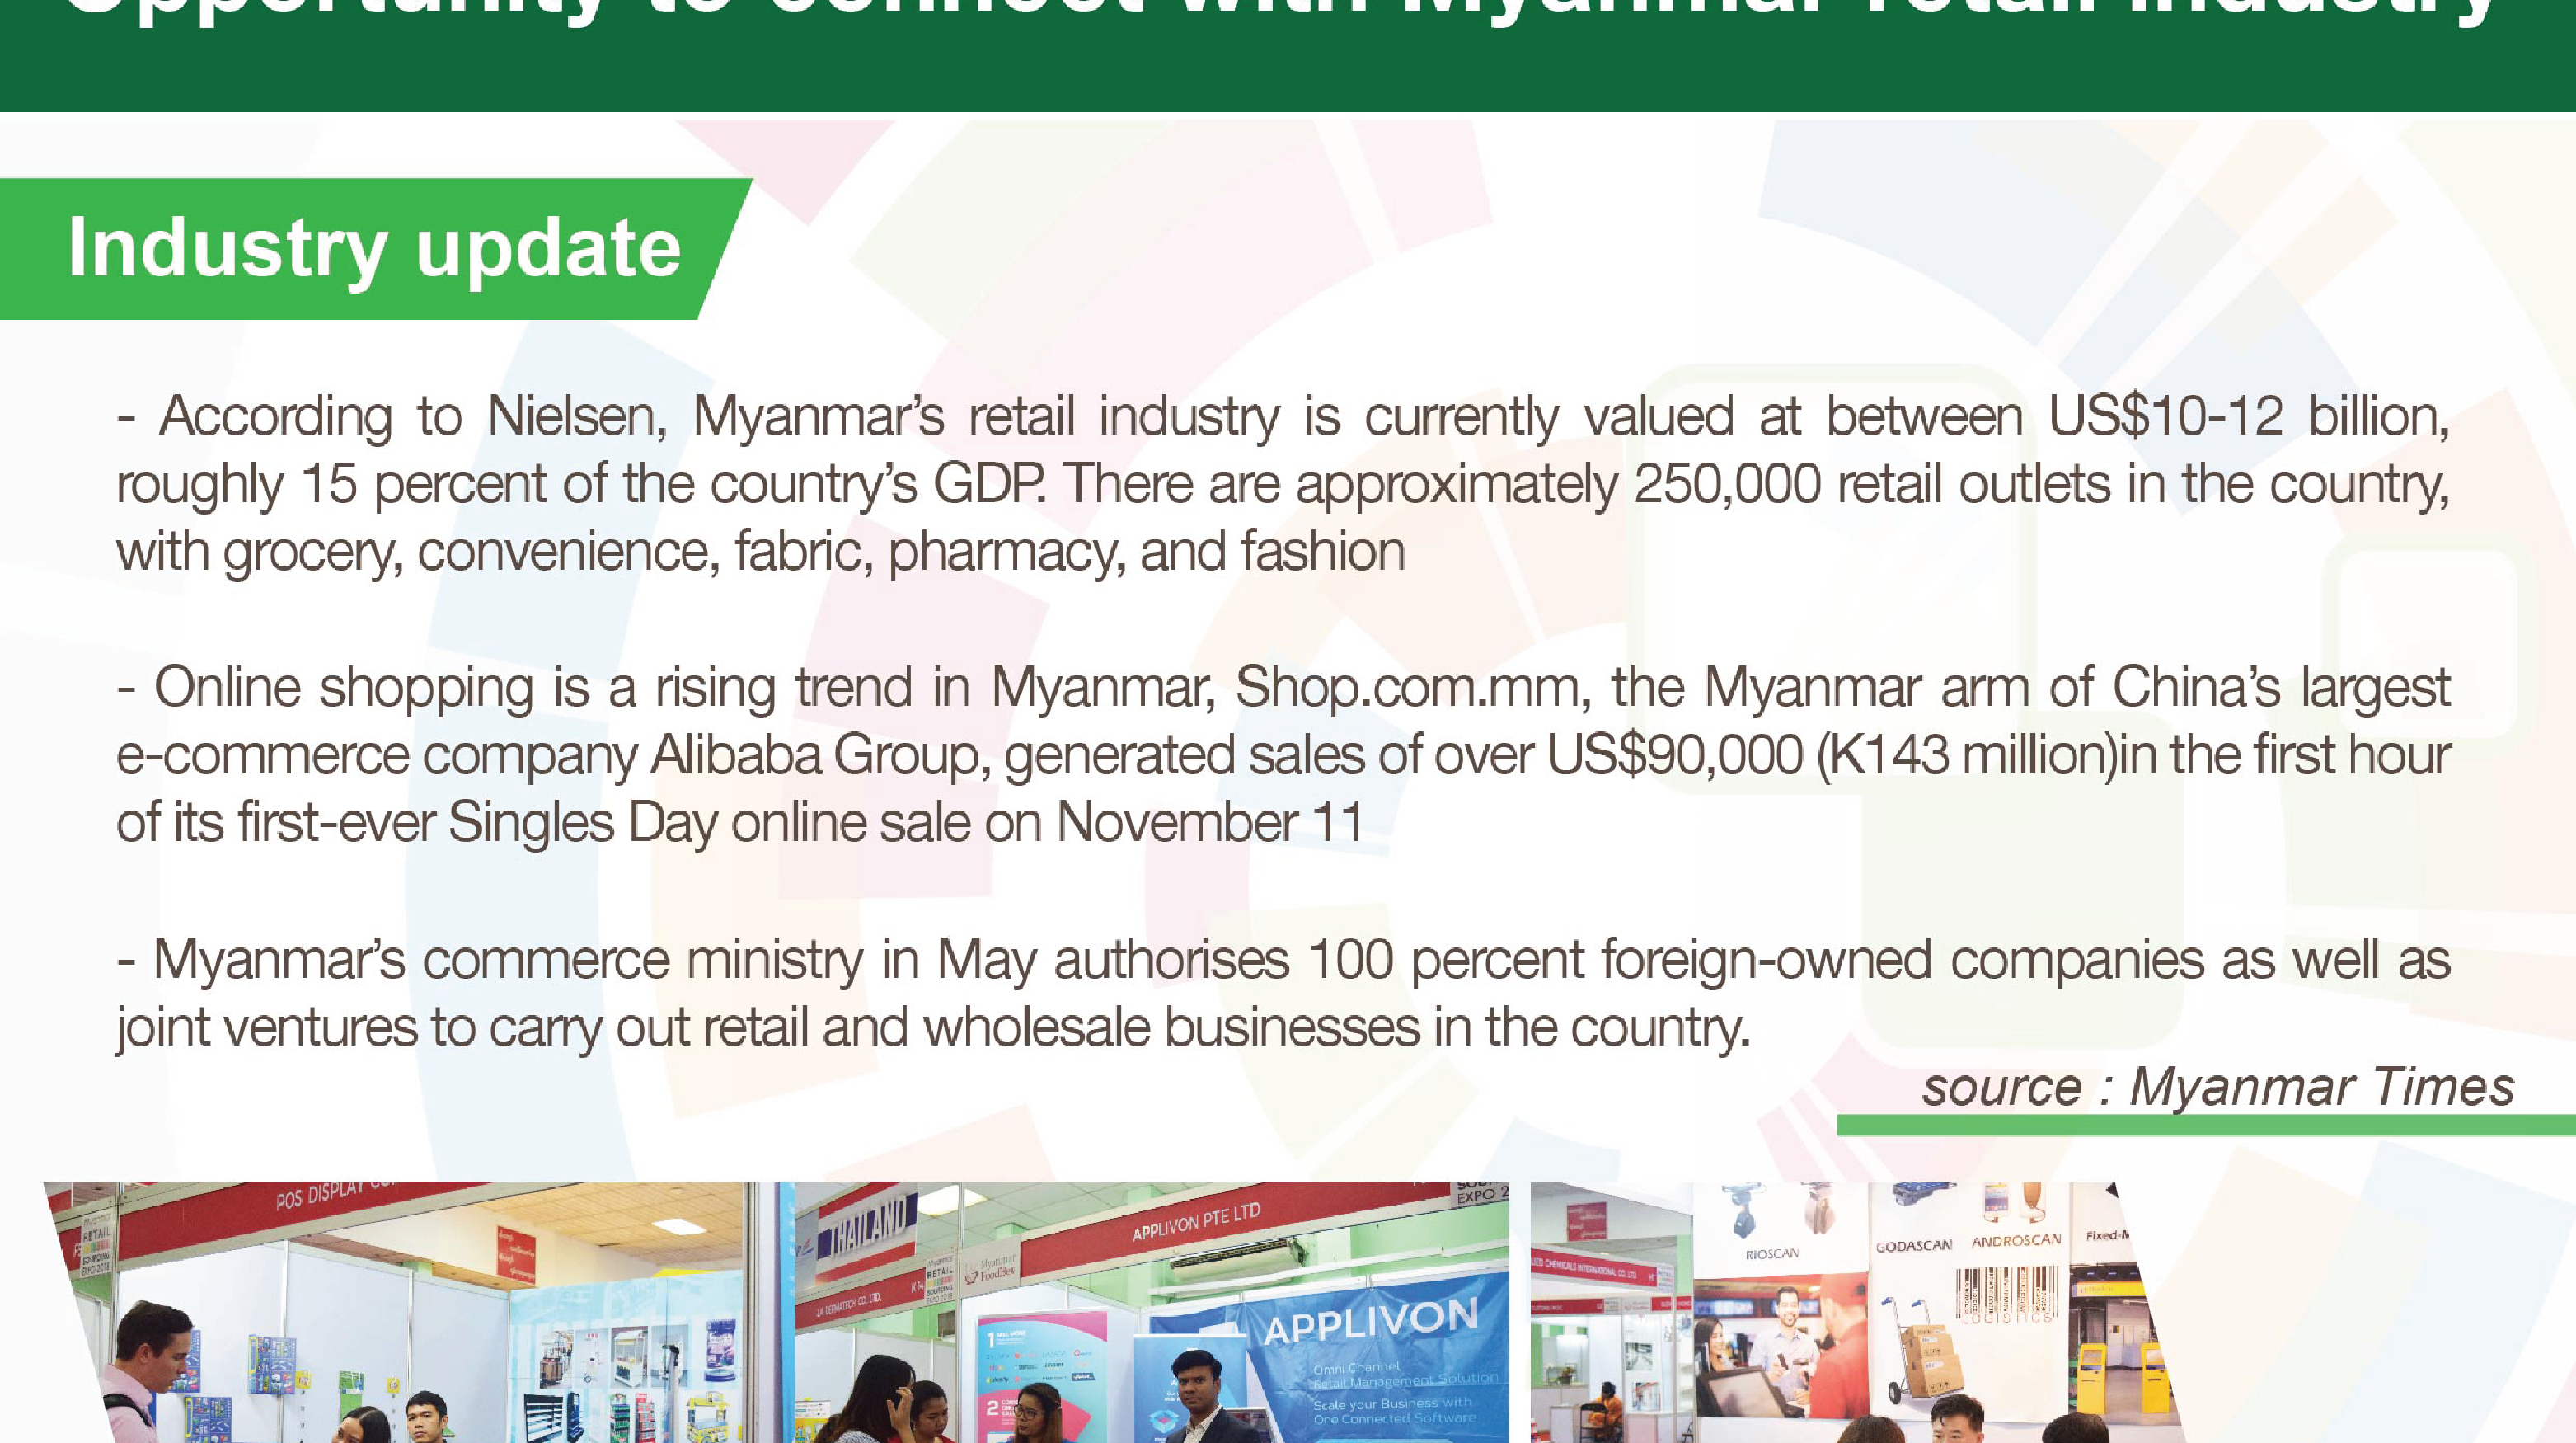 Opportunity to connect with Myanmar retail industry